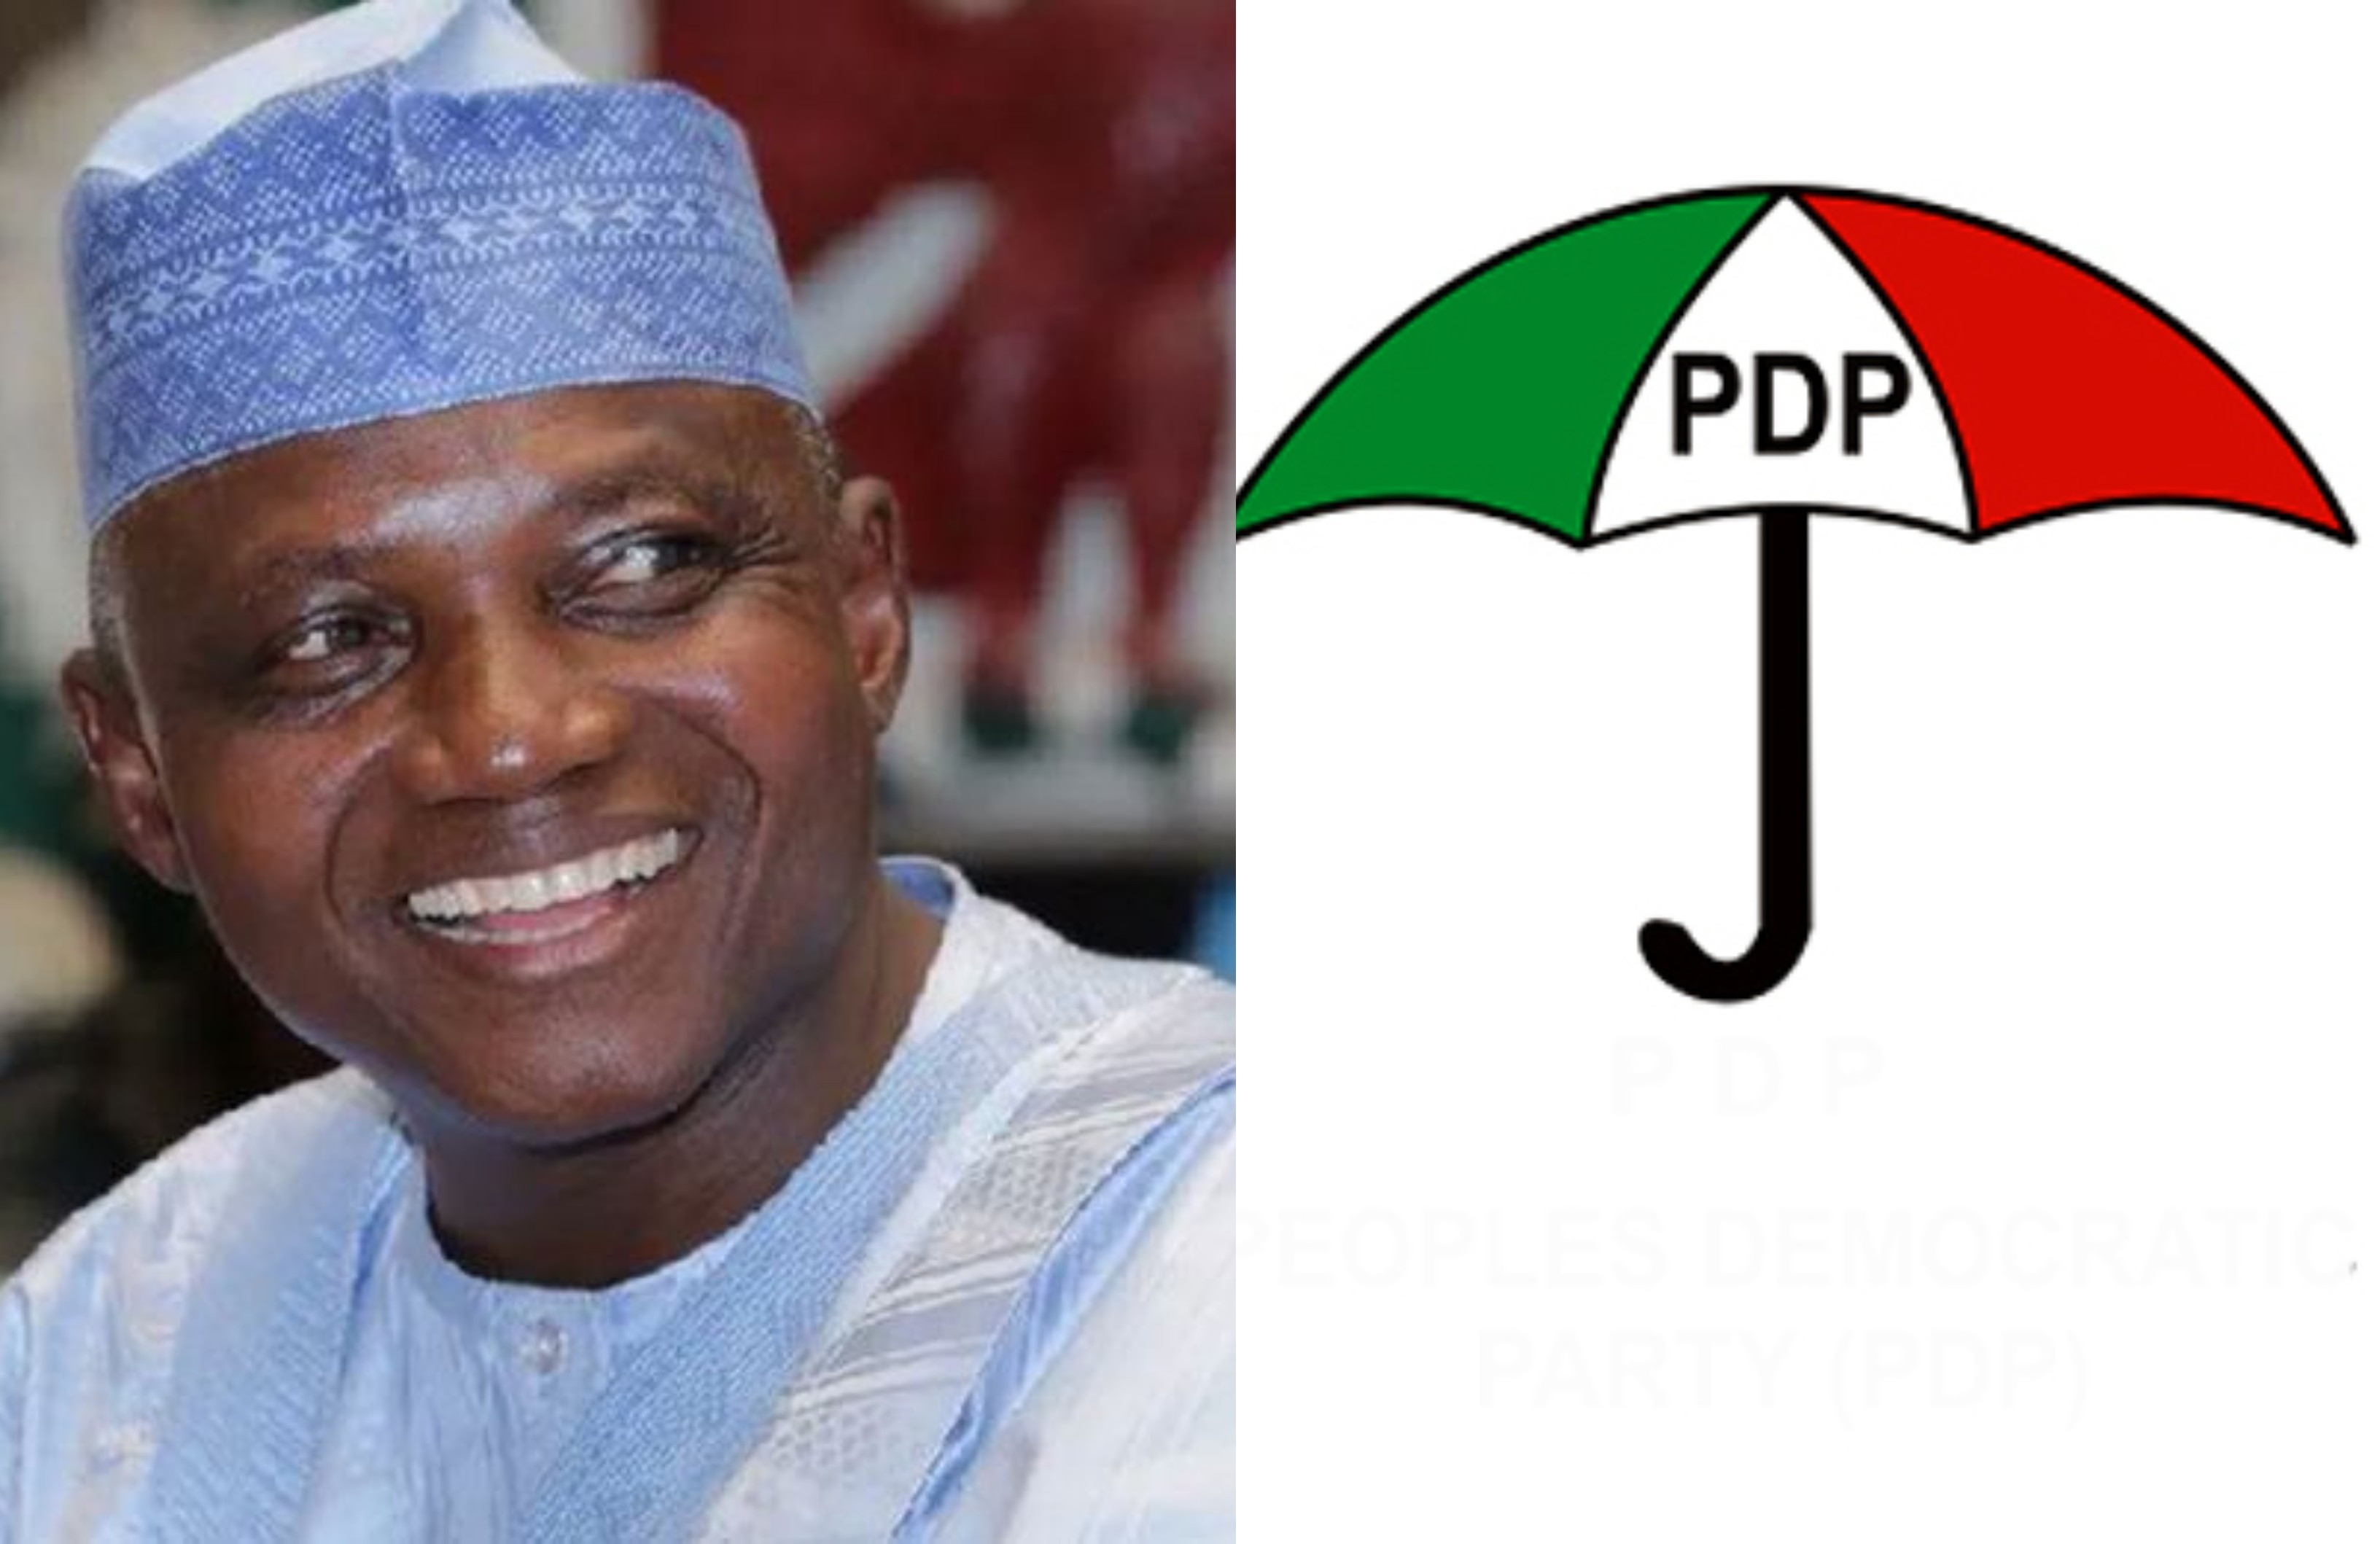 No one can dictate to Buhari where to hold meetings - Garba Shehu fires back at PDP lindaikejisblog